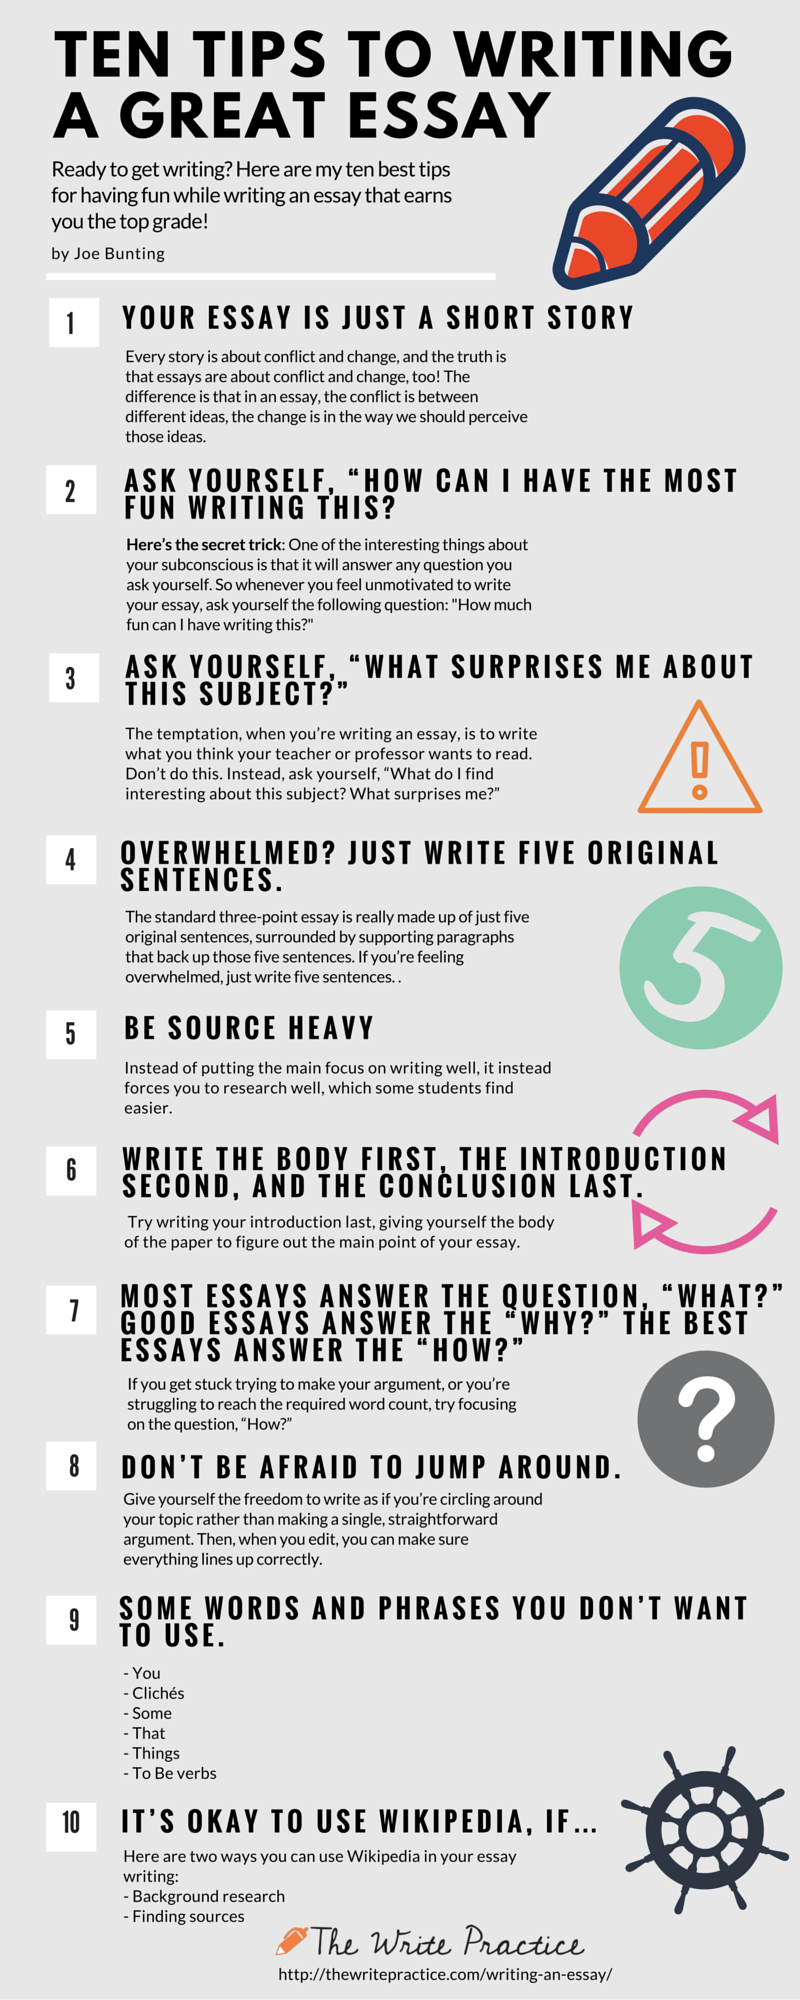 How to write a good but simple essay